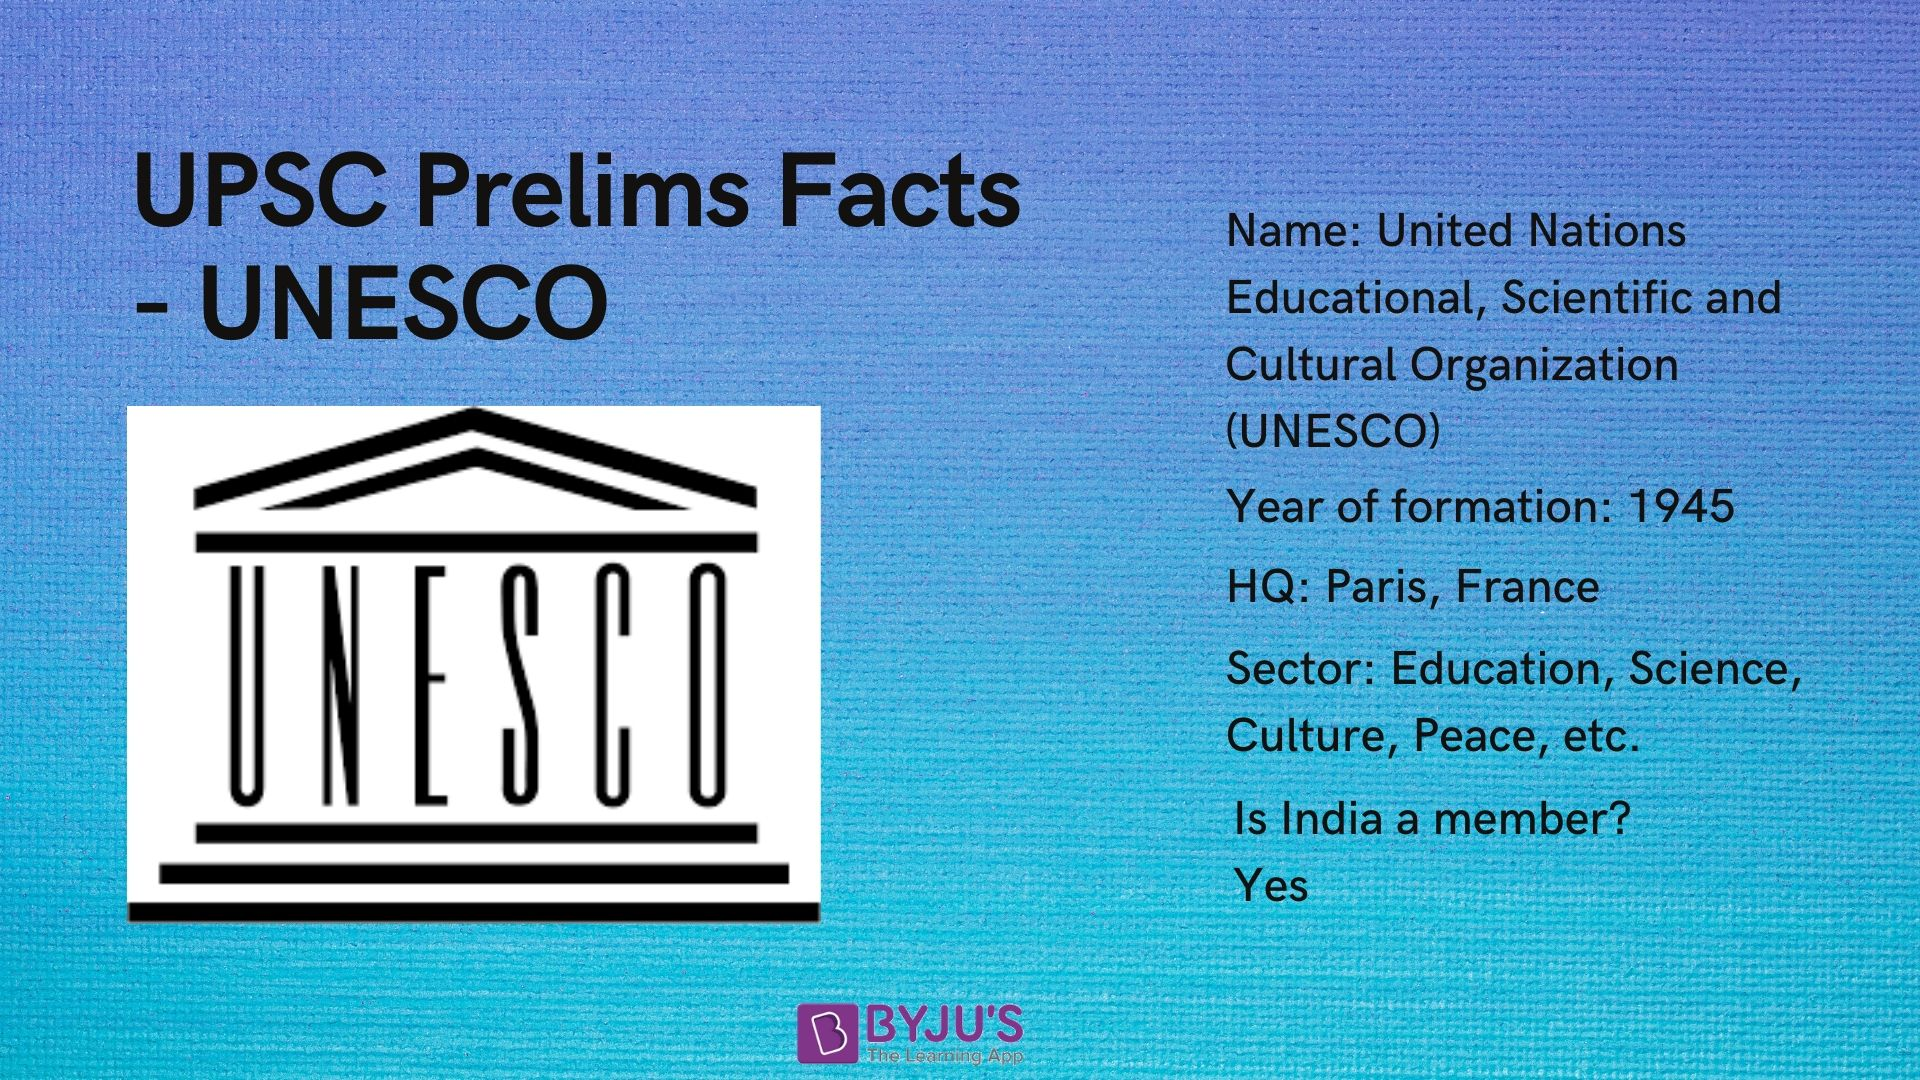 UNESCO - UPSC Prelims Facts